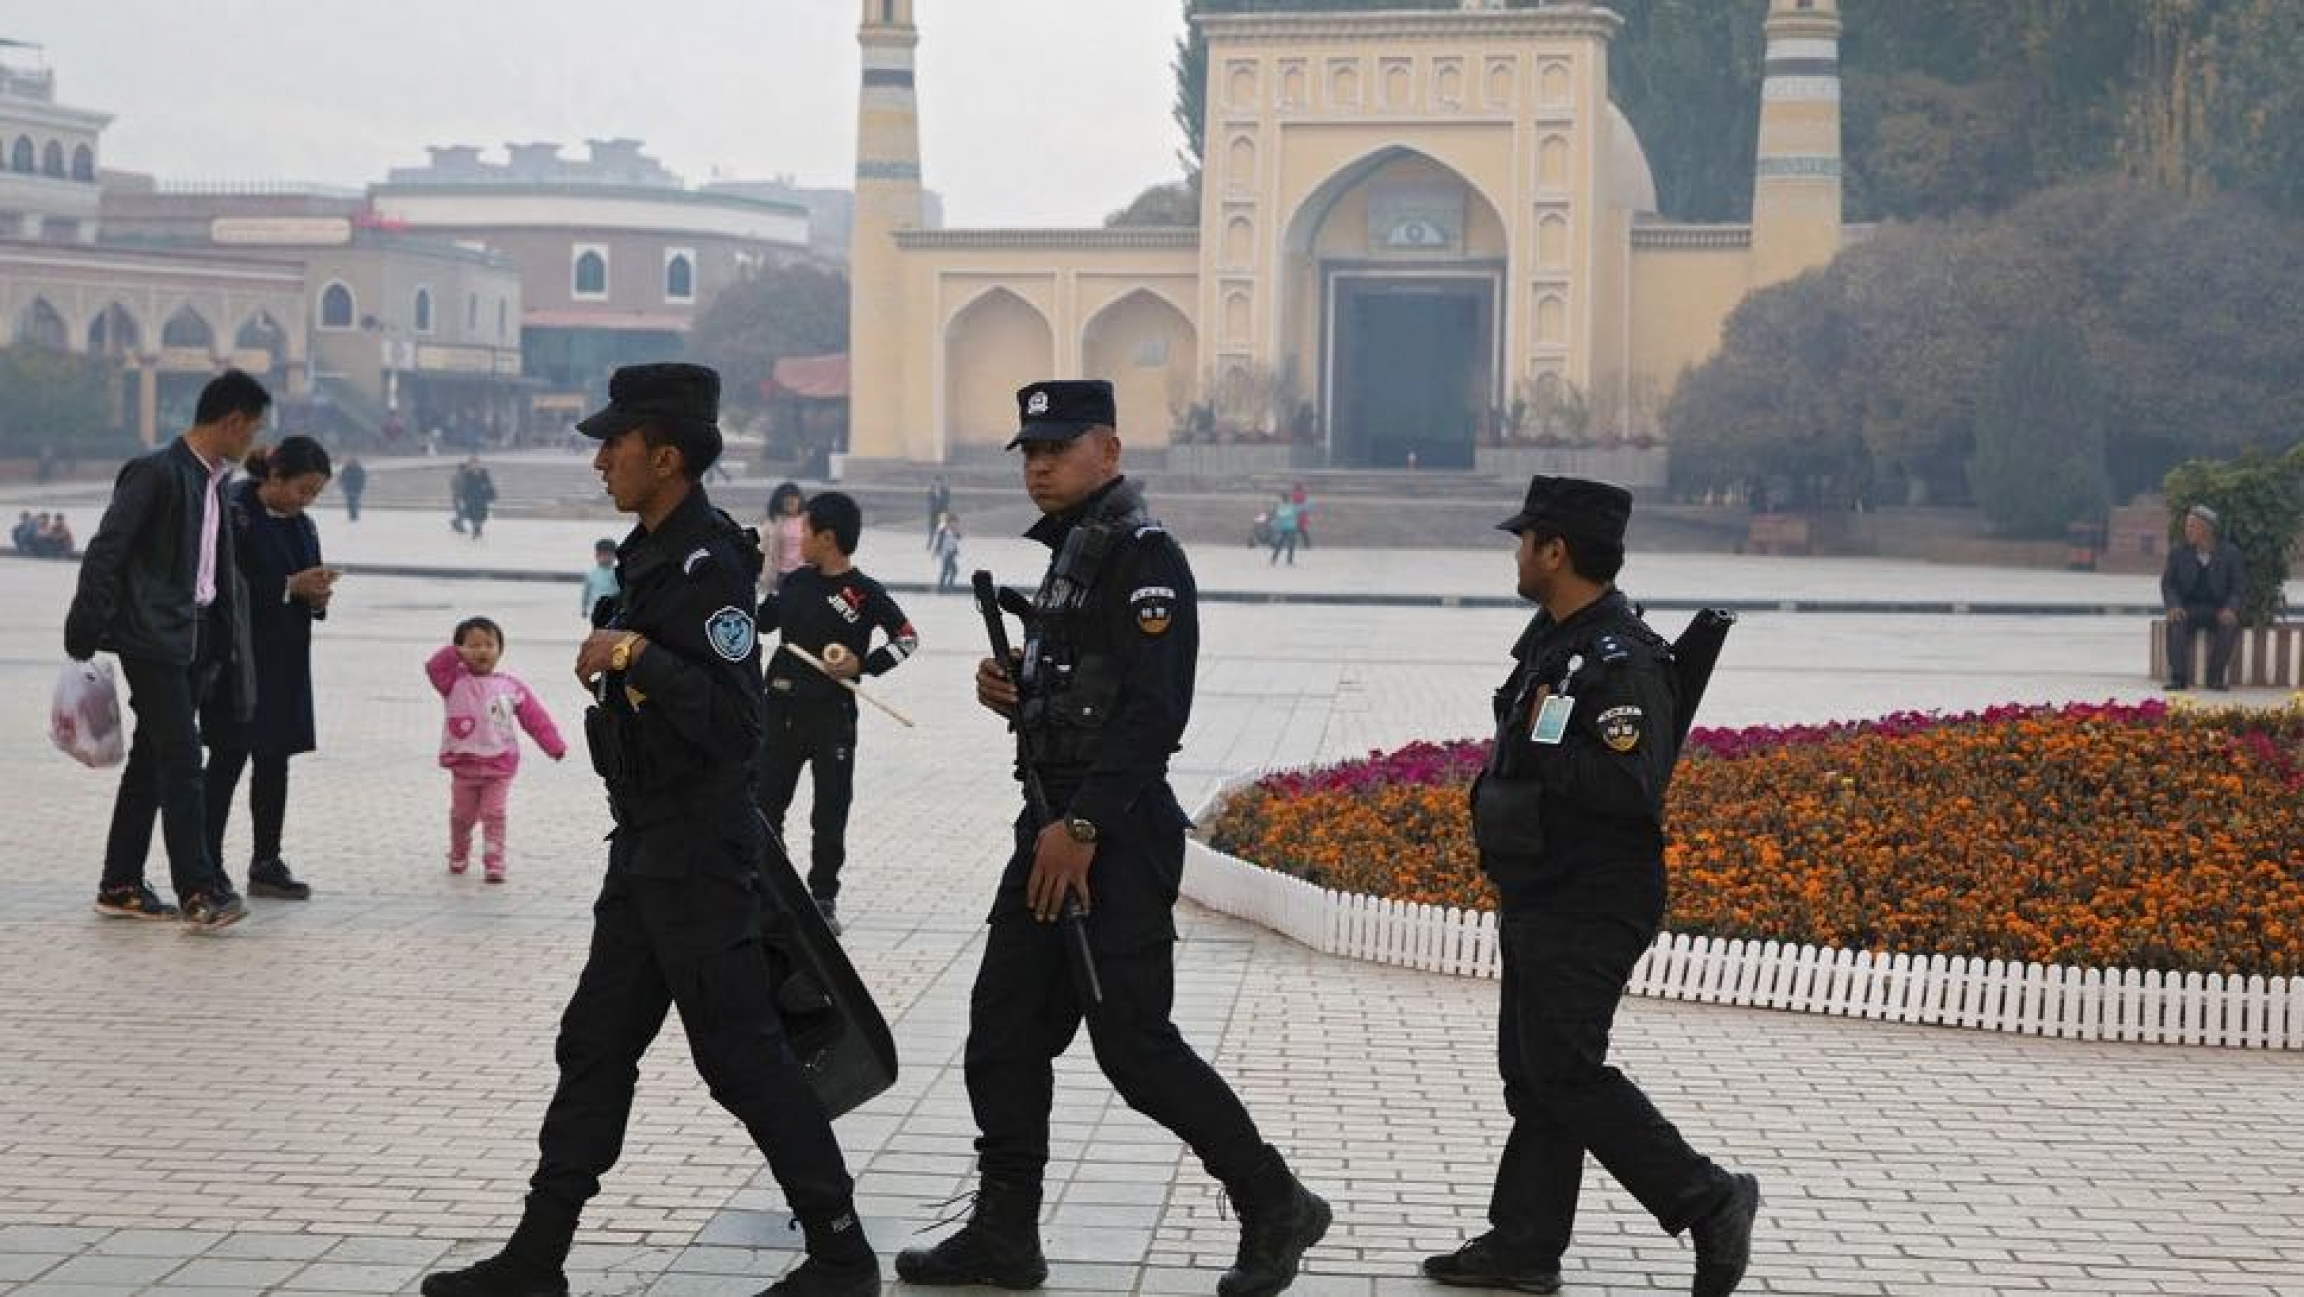 Uighur security personnel patrol near the Id Kah Mosque in Kashgar in western China's Xinjiang region,Nov. 4, 2017. A Chinese Communist Party official signaled Monday, Dec. 21, 2020, that there would likely be no let-up in its crackdown in the Xinjiang r